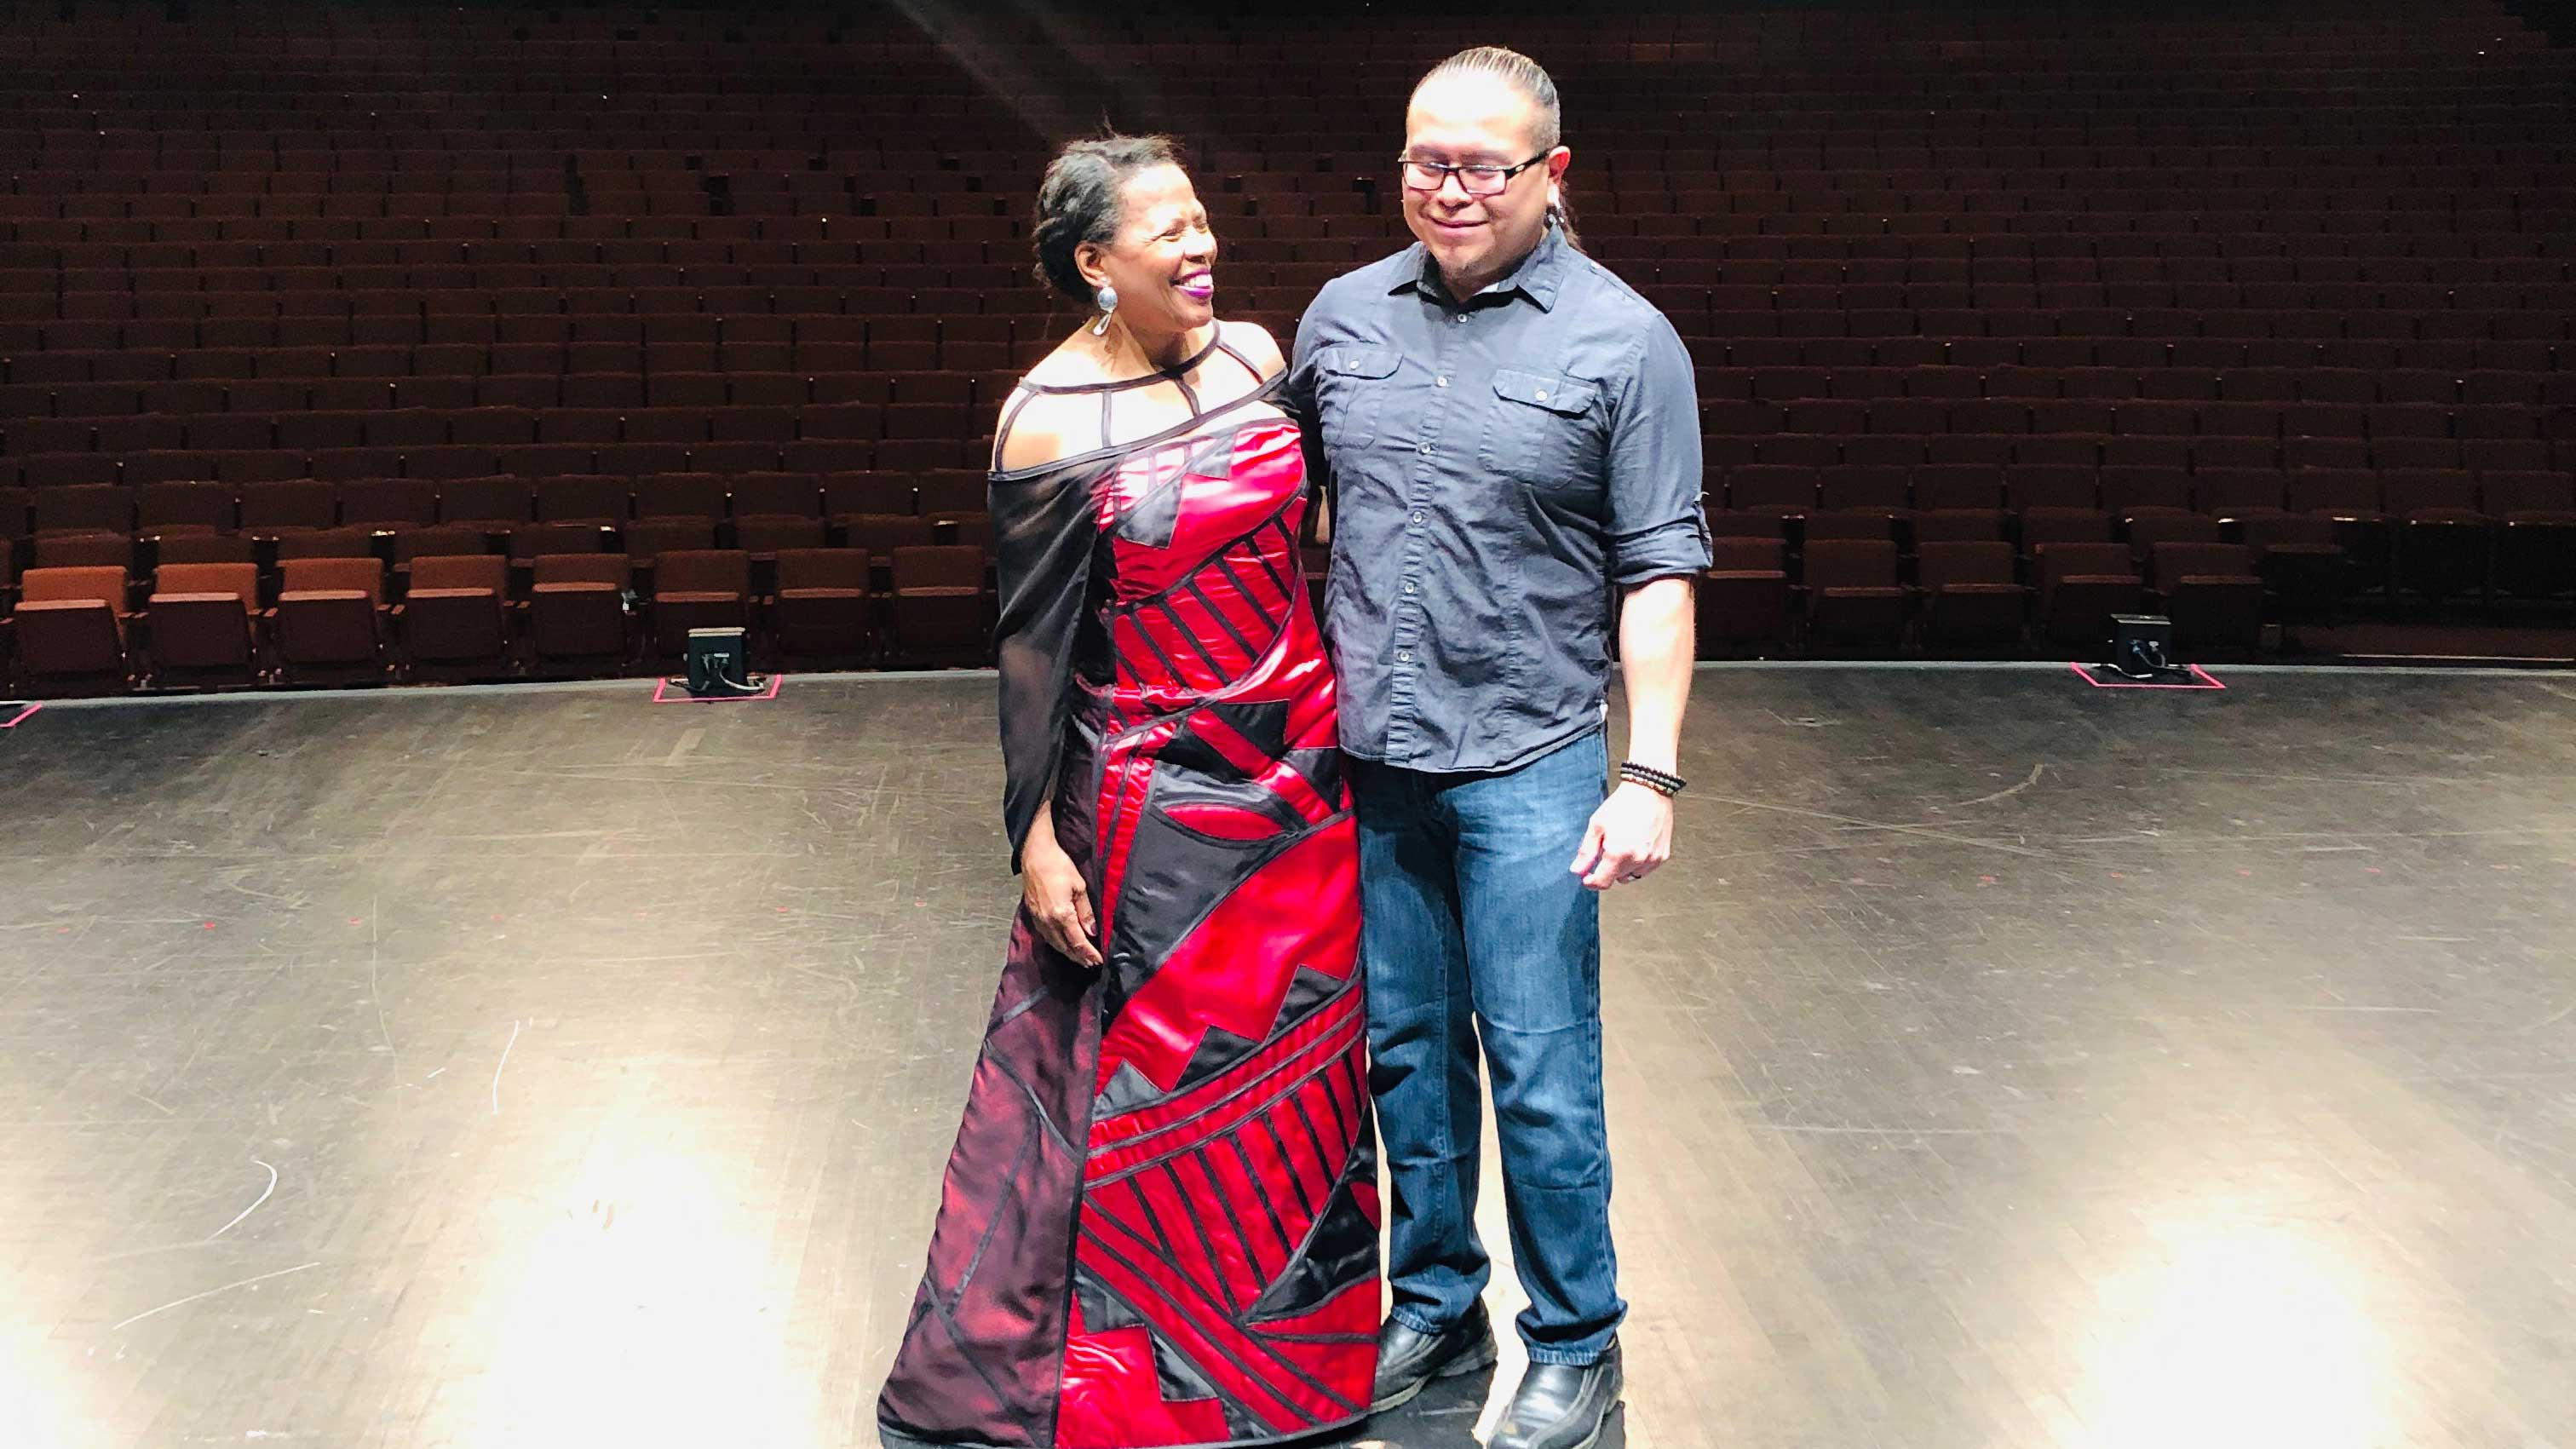 Colleen Jennings-Roggensack and Loren Aragon are on stage at Gammage Auditorium, whre Jennings-Roggensack is wearing the dress Aragon designed